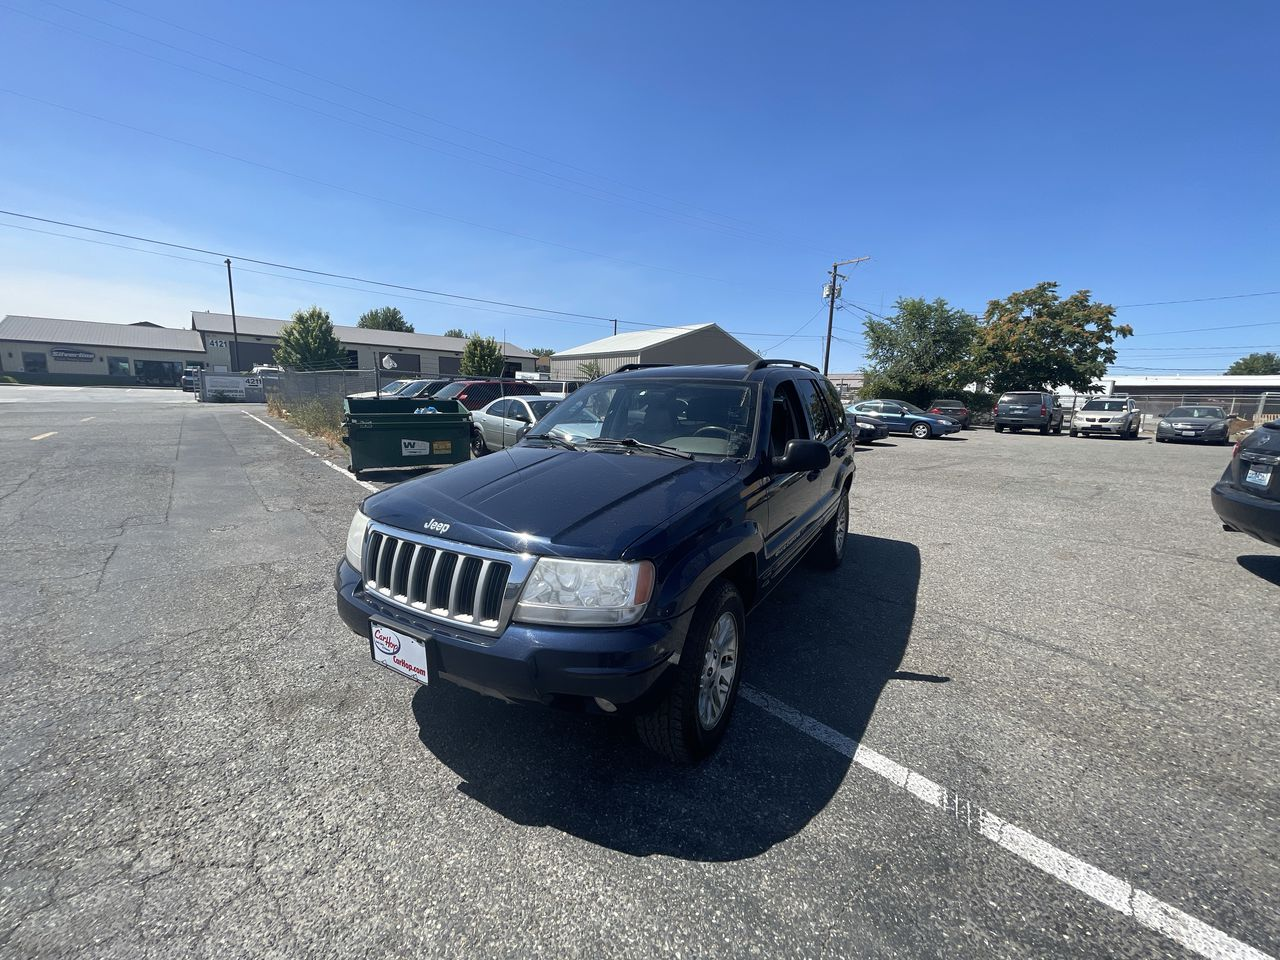 Pre-Owned 2004 JEEP GRAND CHEROKEE Limited Sp